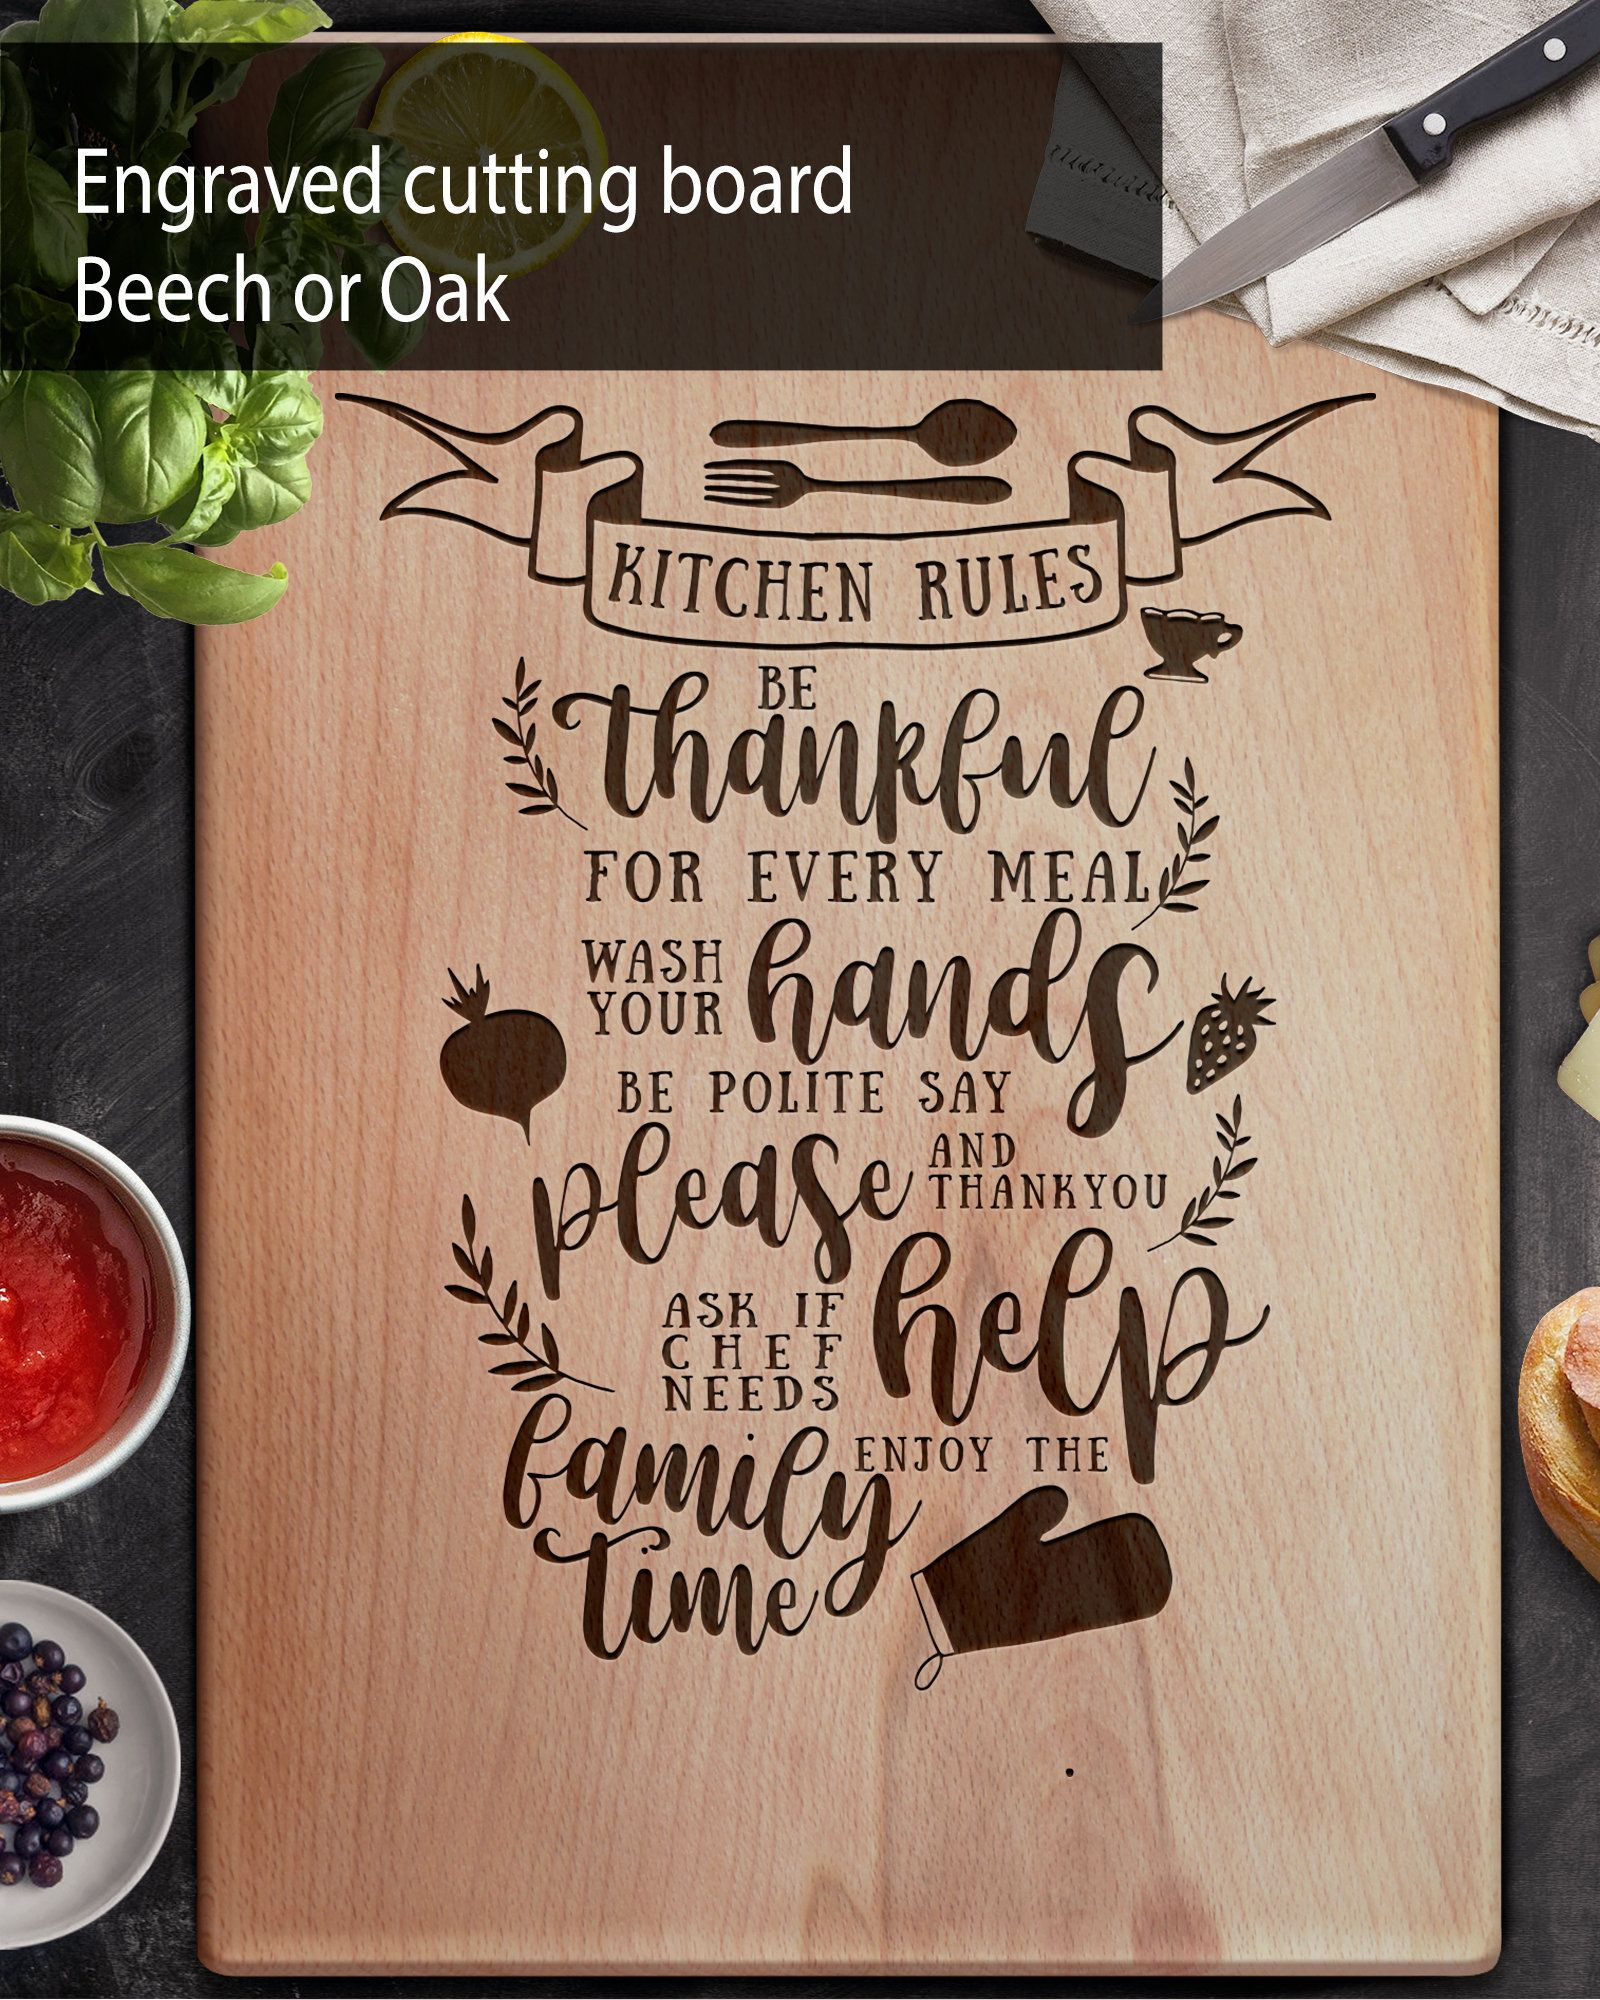 Kitchen Rules Engraved Cutting Board, Custom Cutting Board, Wedding Gift, Anniversary Gift, Christmas Gift housewarming gift Homeowner gift #kitchenrules